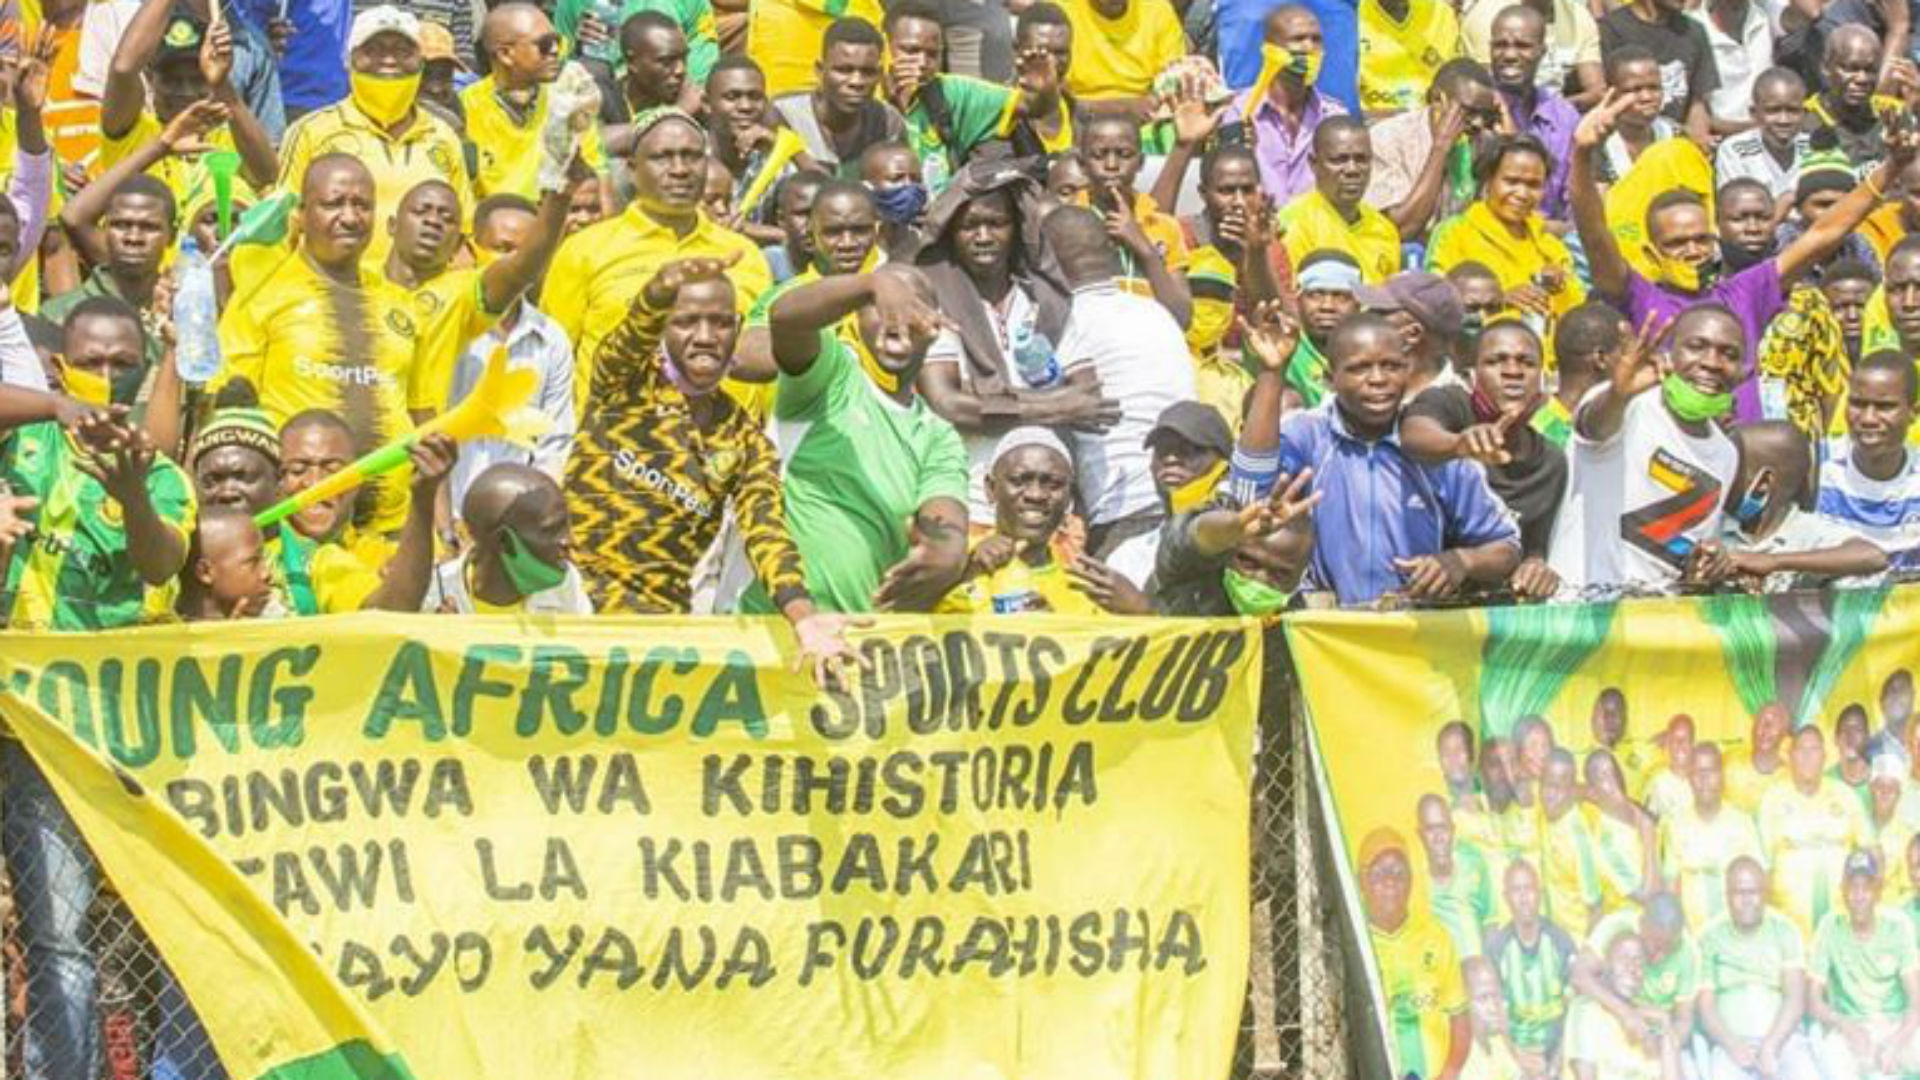 'Simba SC were lucky because they were to suffer' - Yanga SC after Kariakoo Derby cancellation